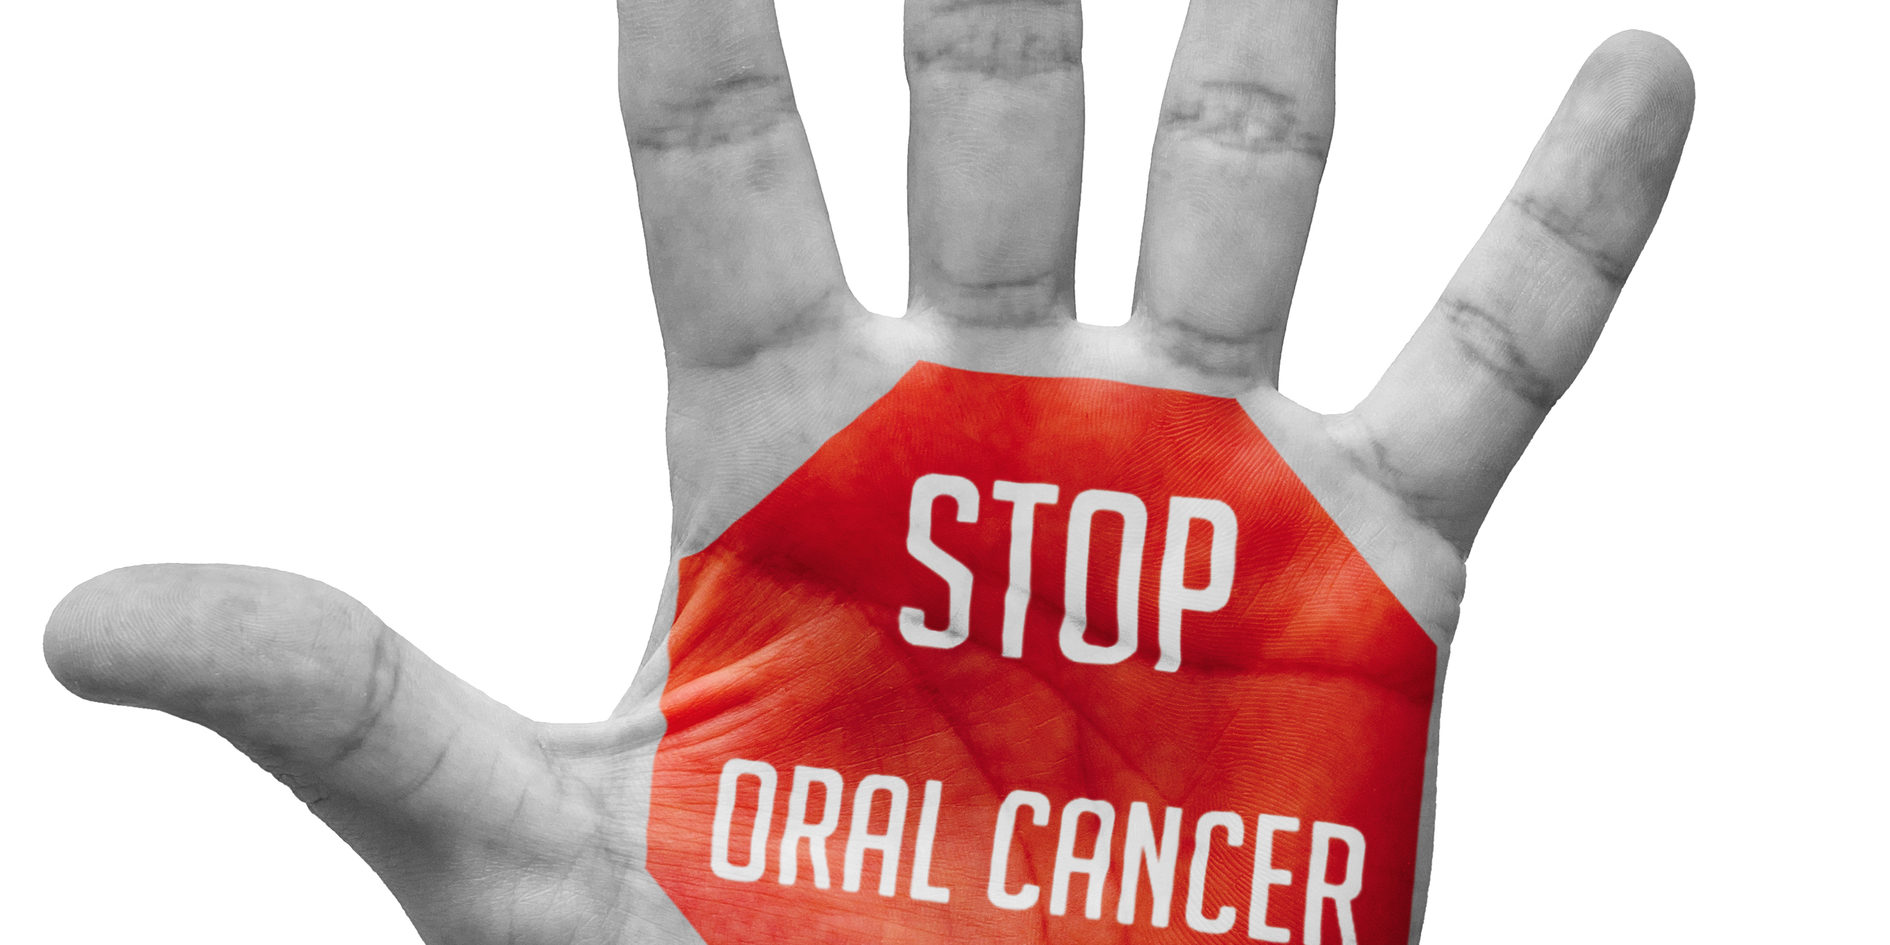 Silent Signs Of Oral Cancer You Should Pay Attention To